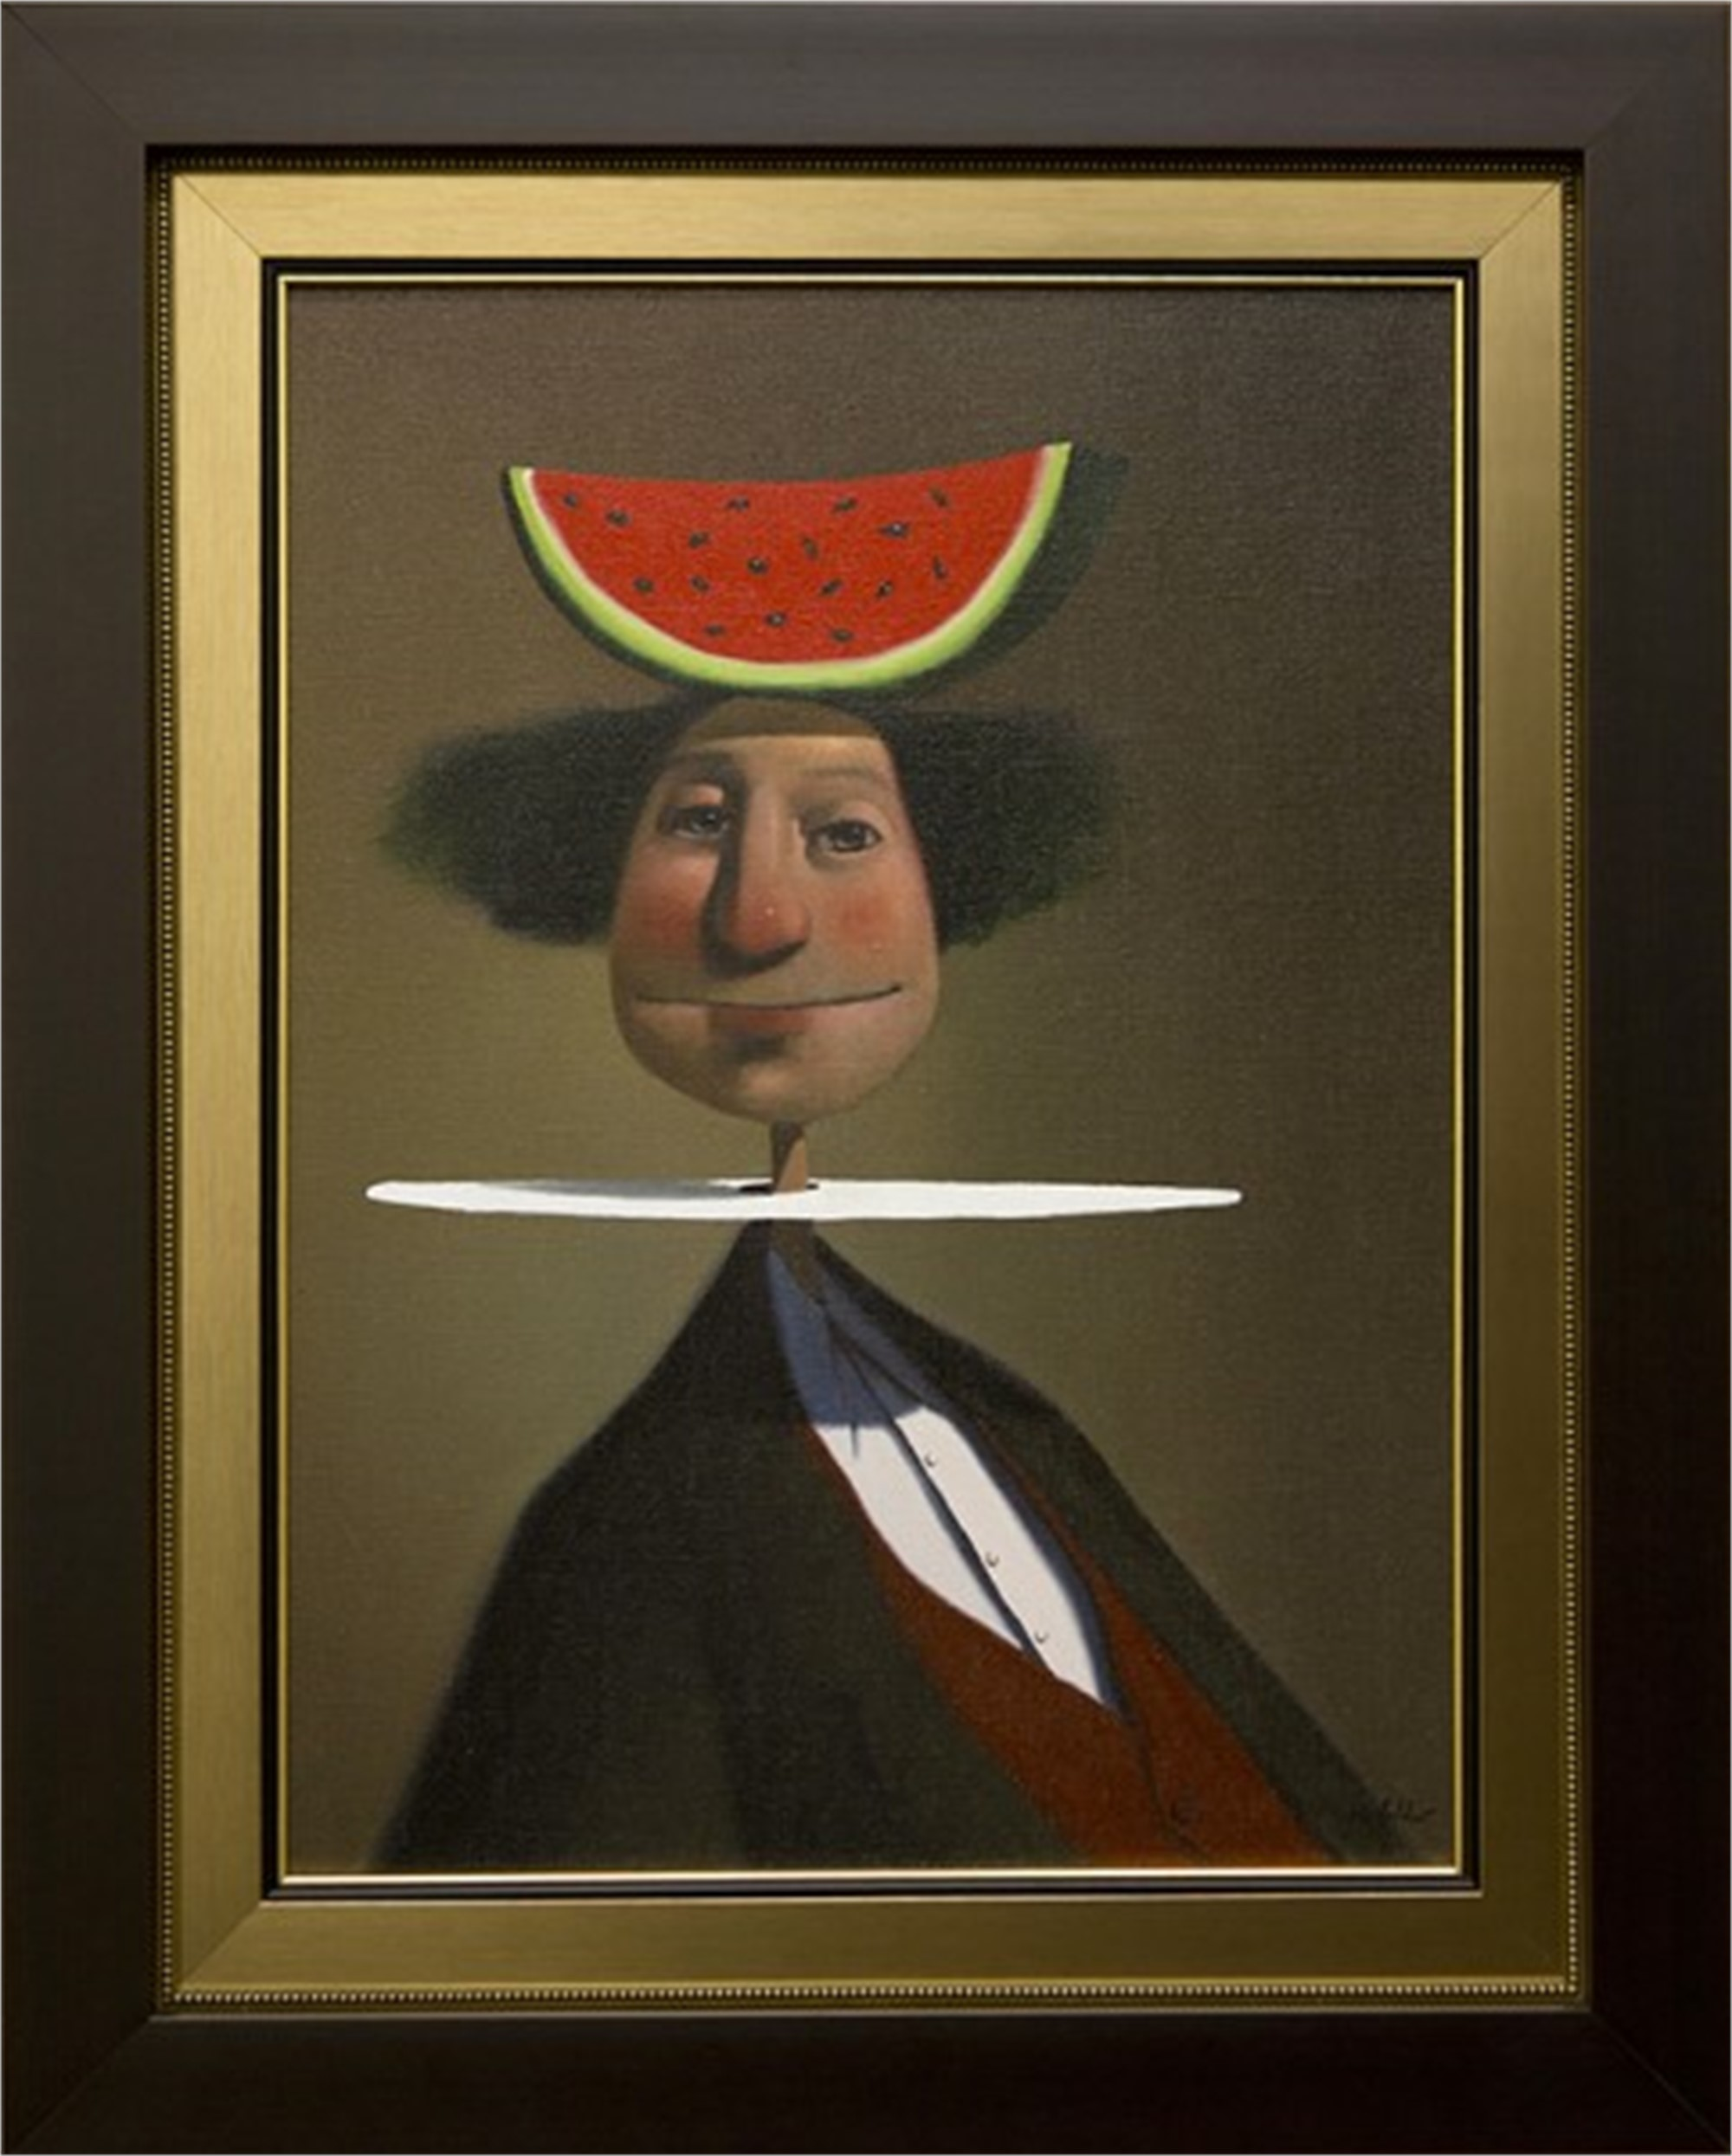 Watermelon Man by Joe McFadden